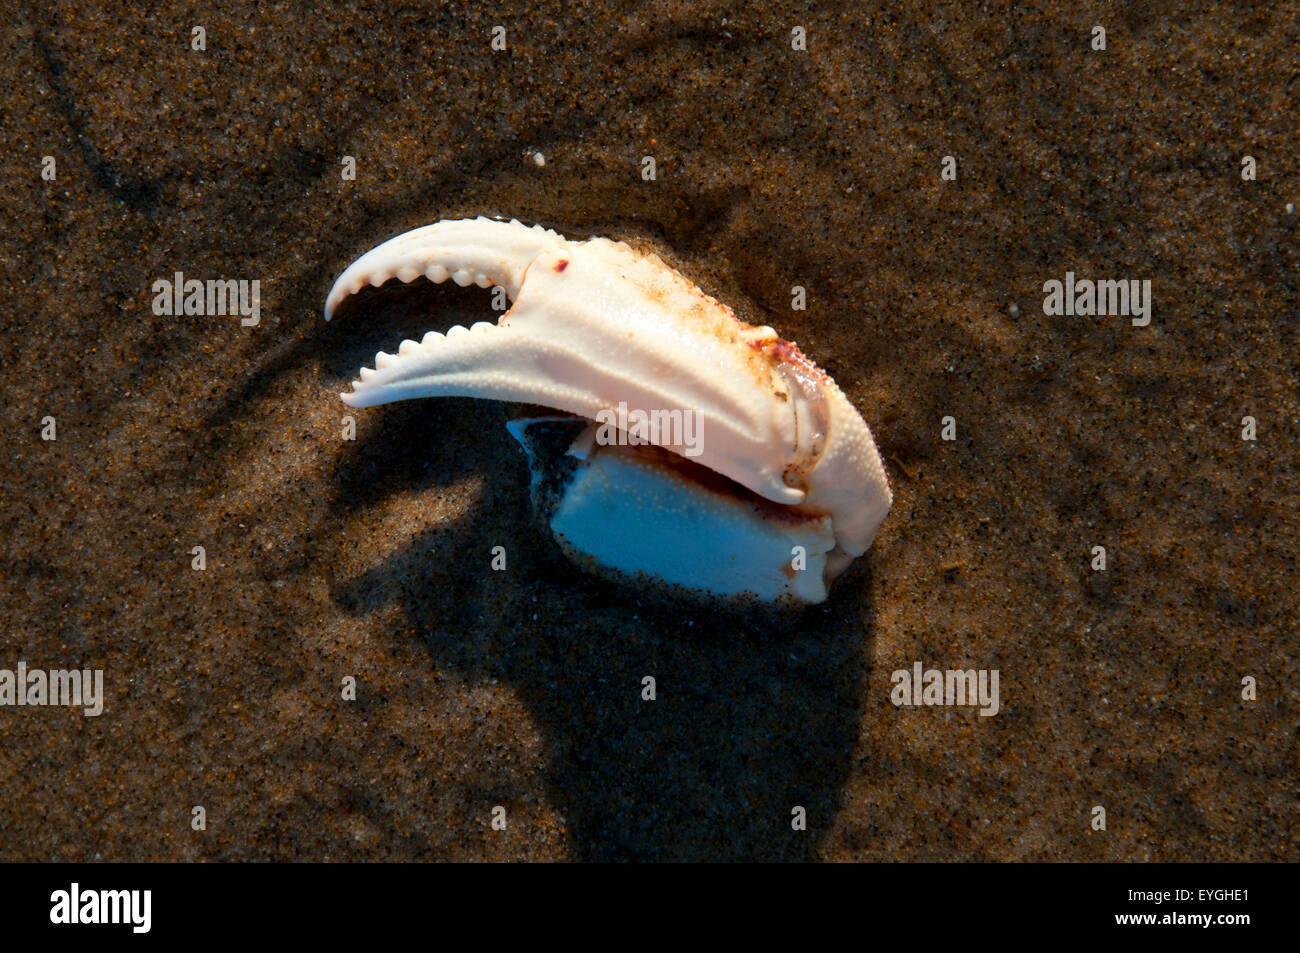 Crab claw, Cape Lookout State Park, Oregon - Stock Image